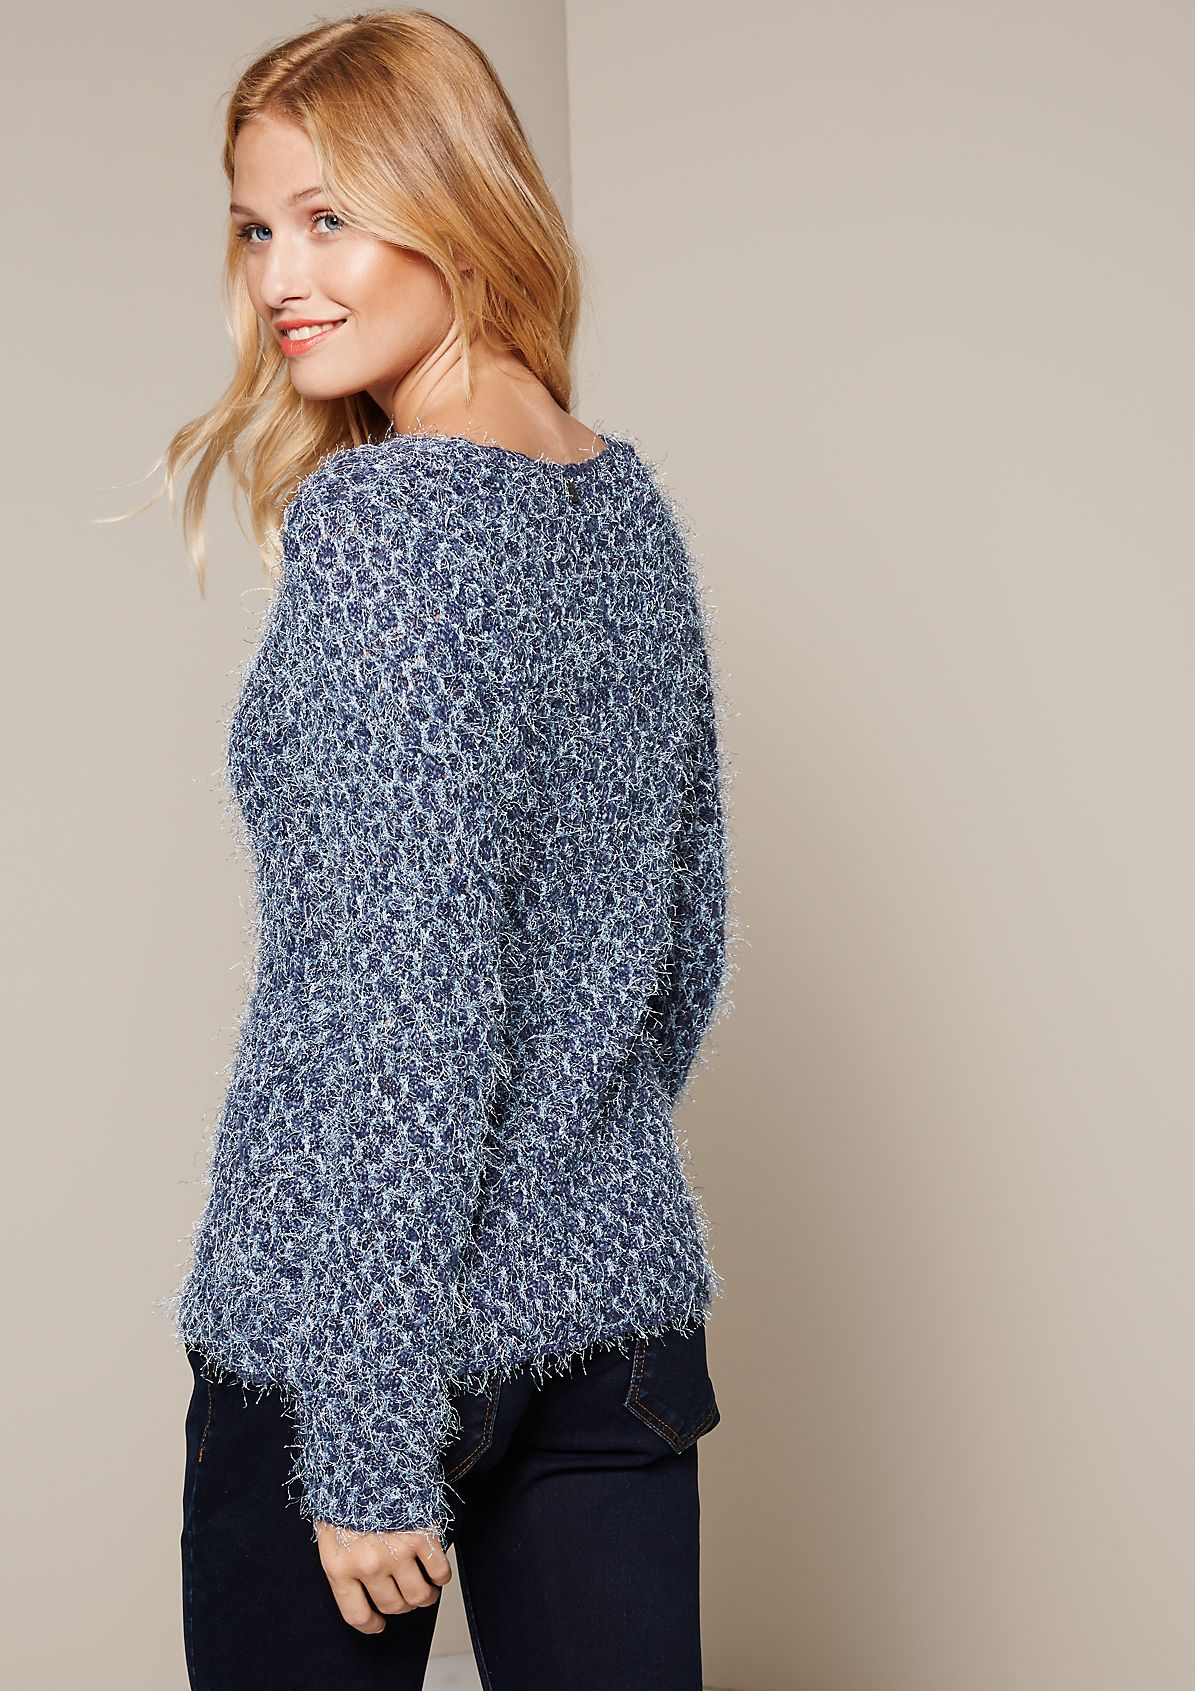 Beautiful autumn jumper with sparkly long yarn from s.Oliver